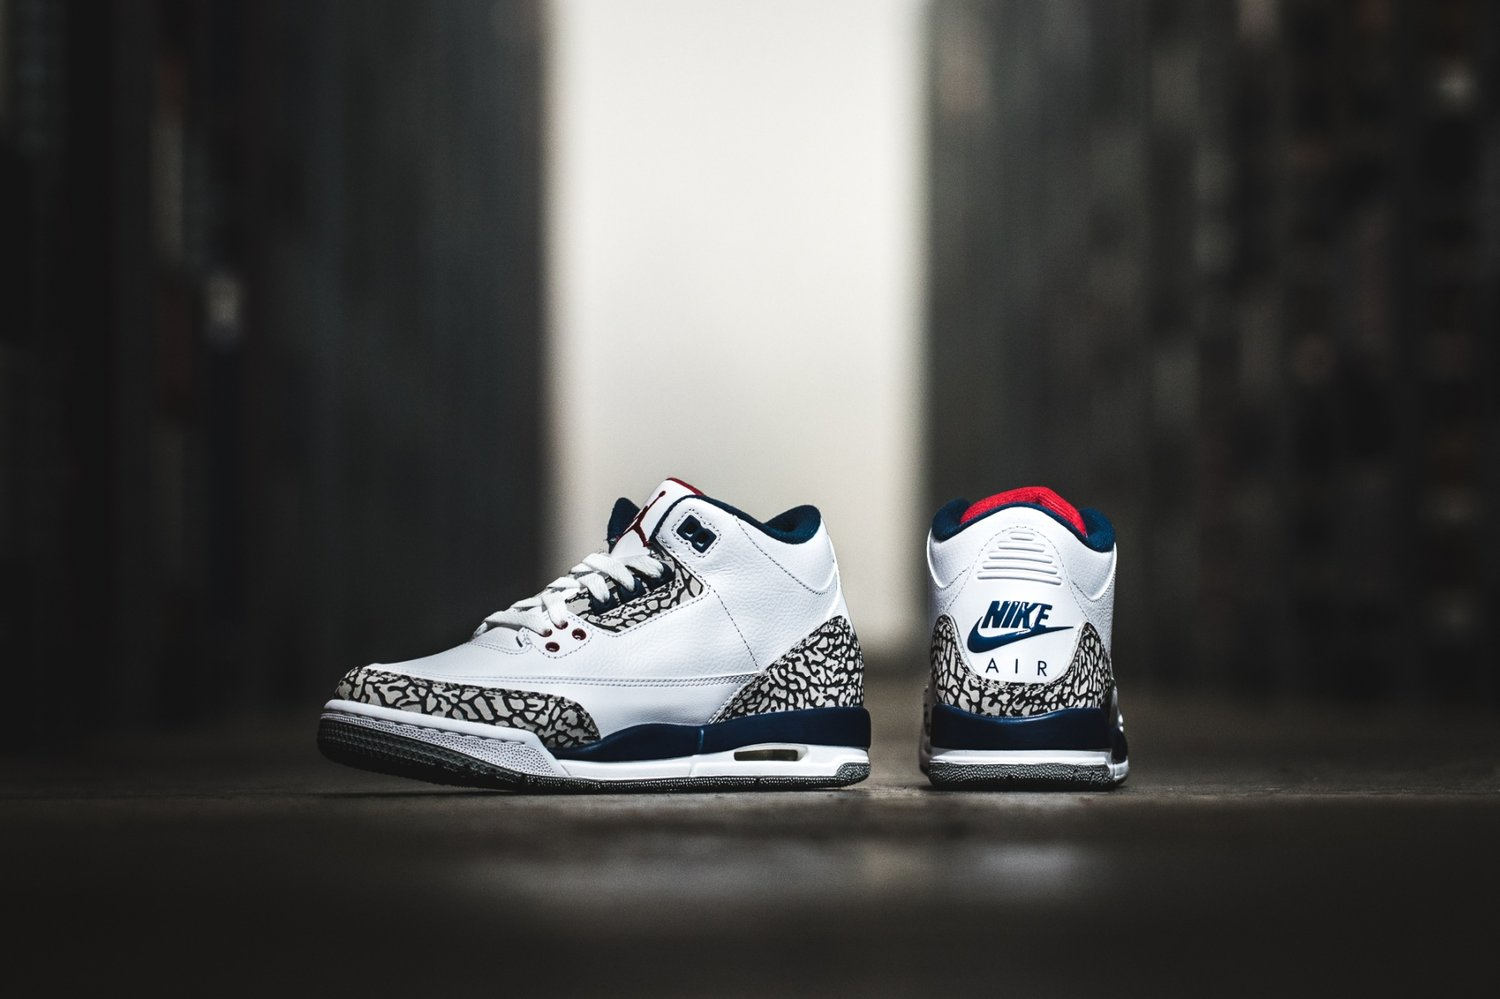 93180dde6246e9 On Sale  GS Air Jordan 3 Retro OG